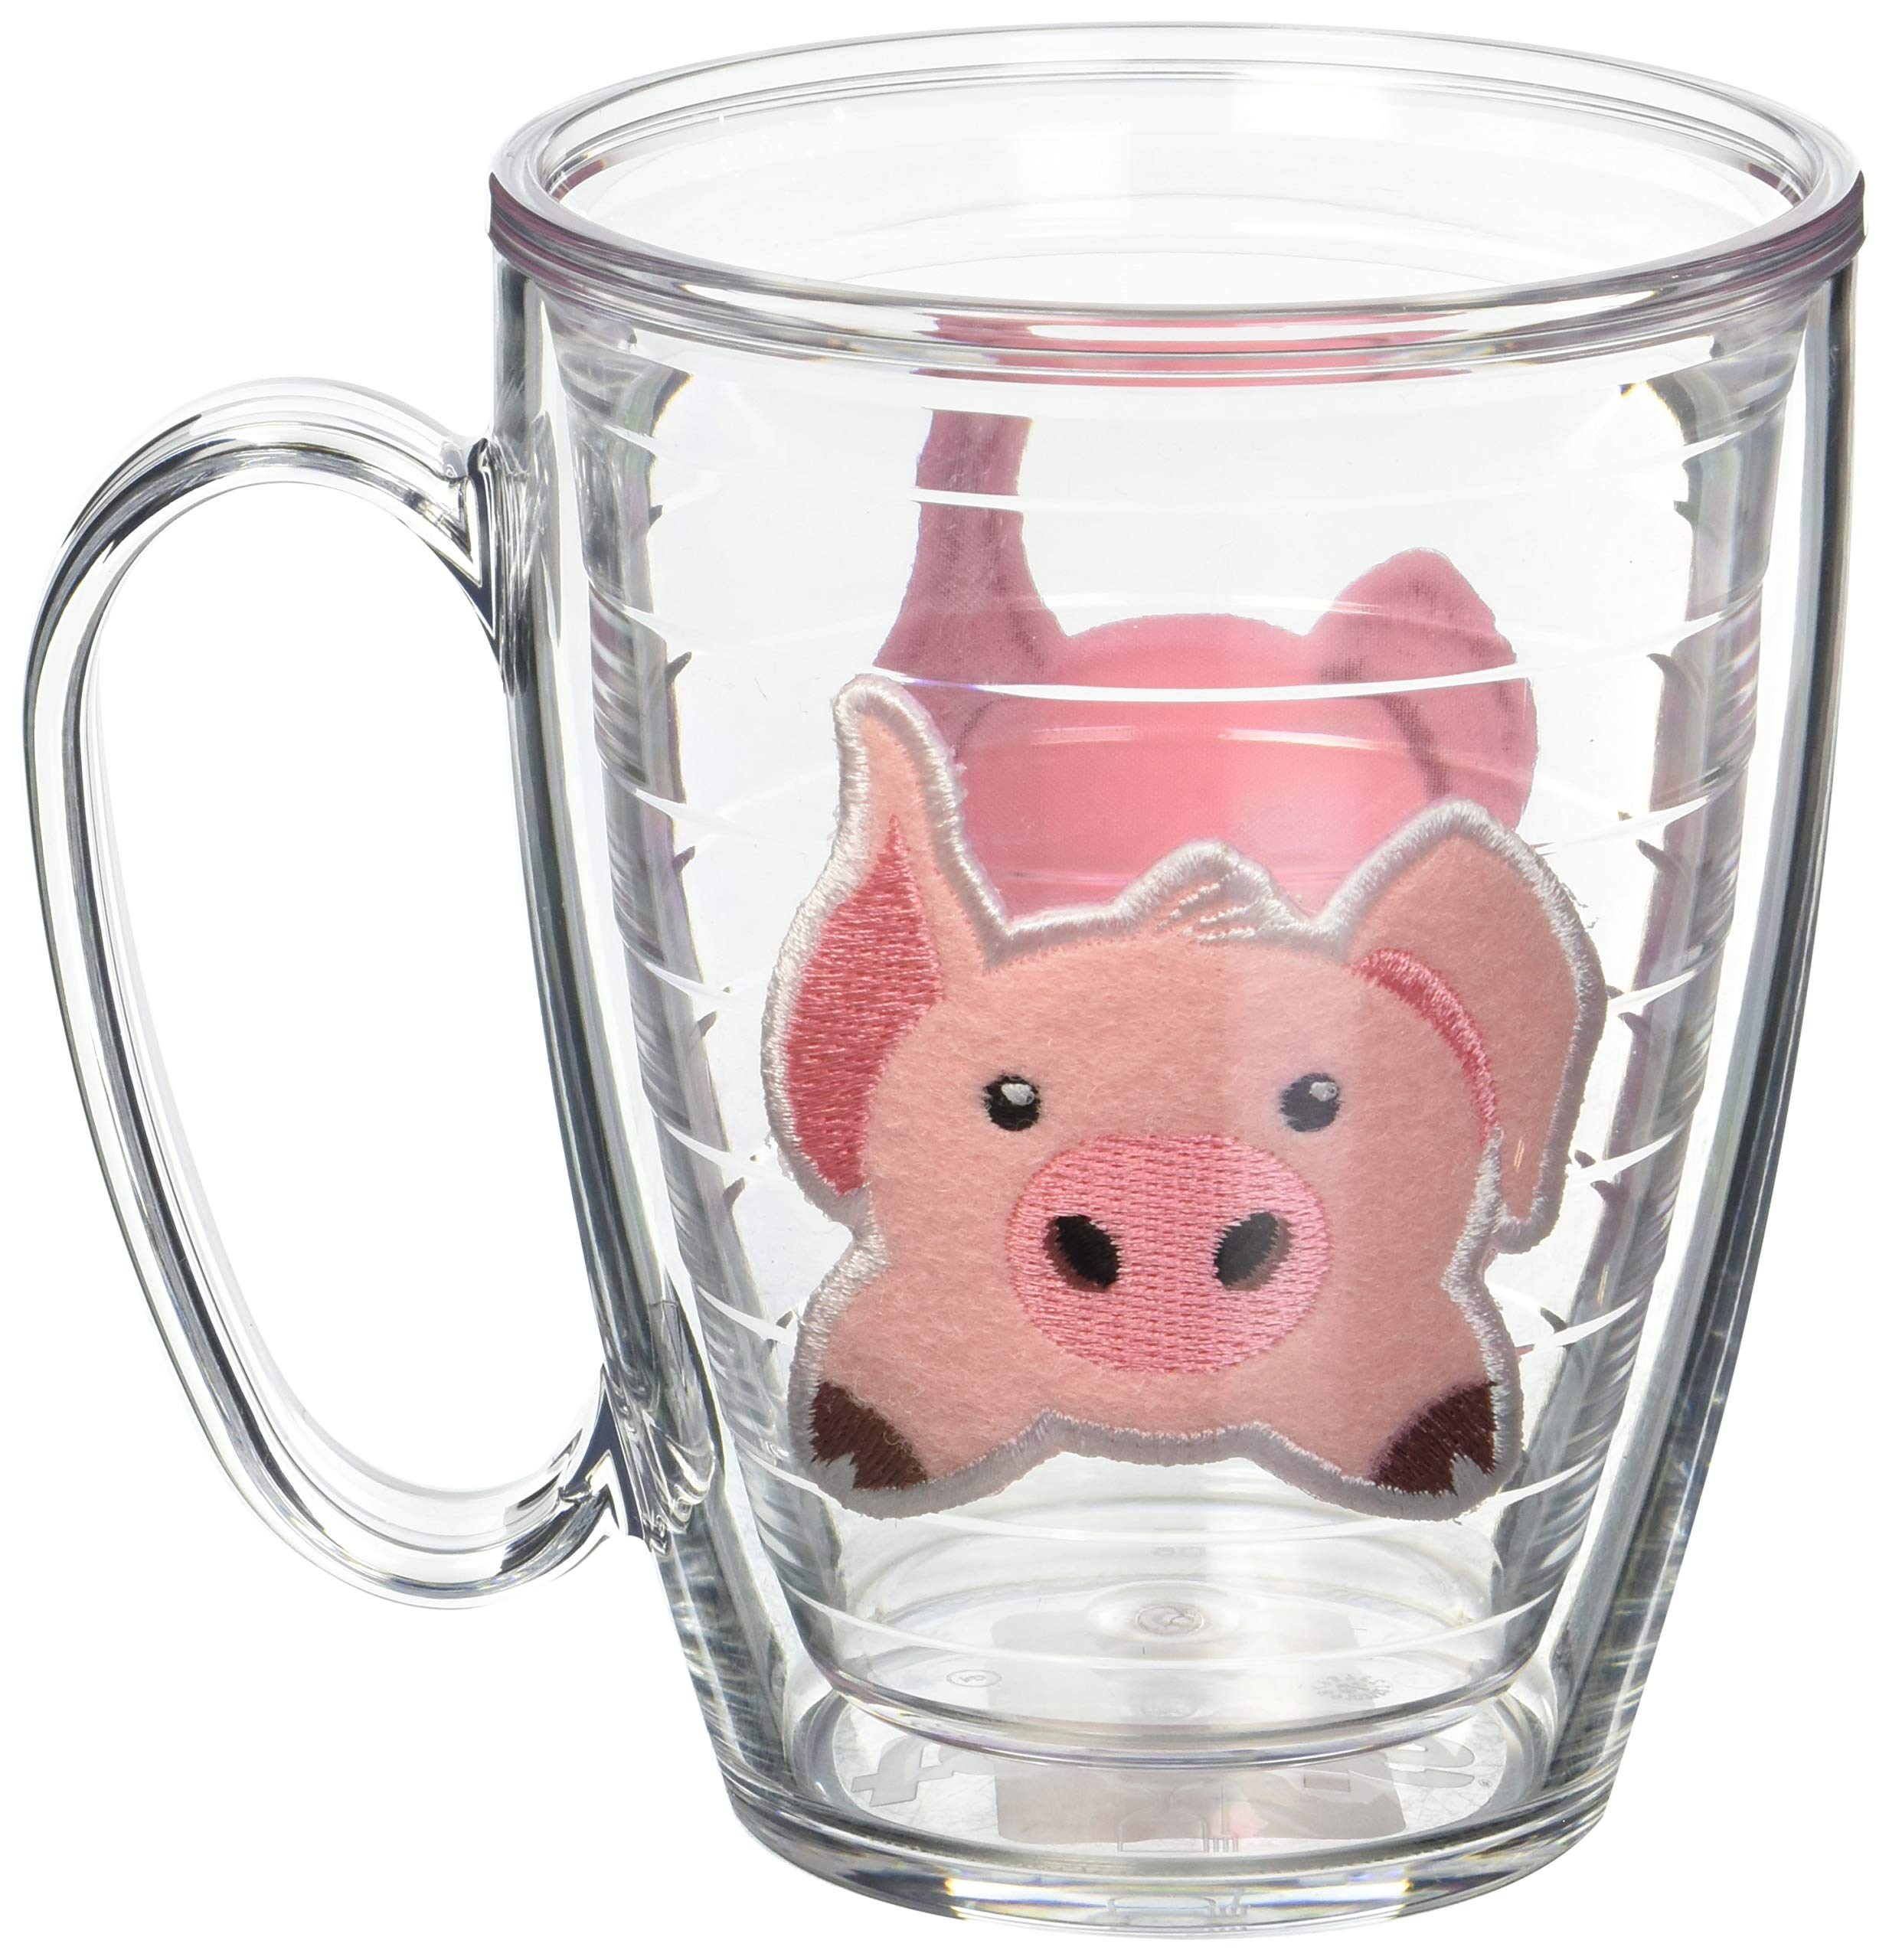 Tervis 1133504 Front & Back Pig Insulated Tumbler with Emblem, 16oz Mug, Clear